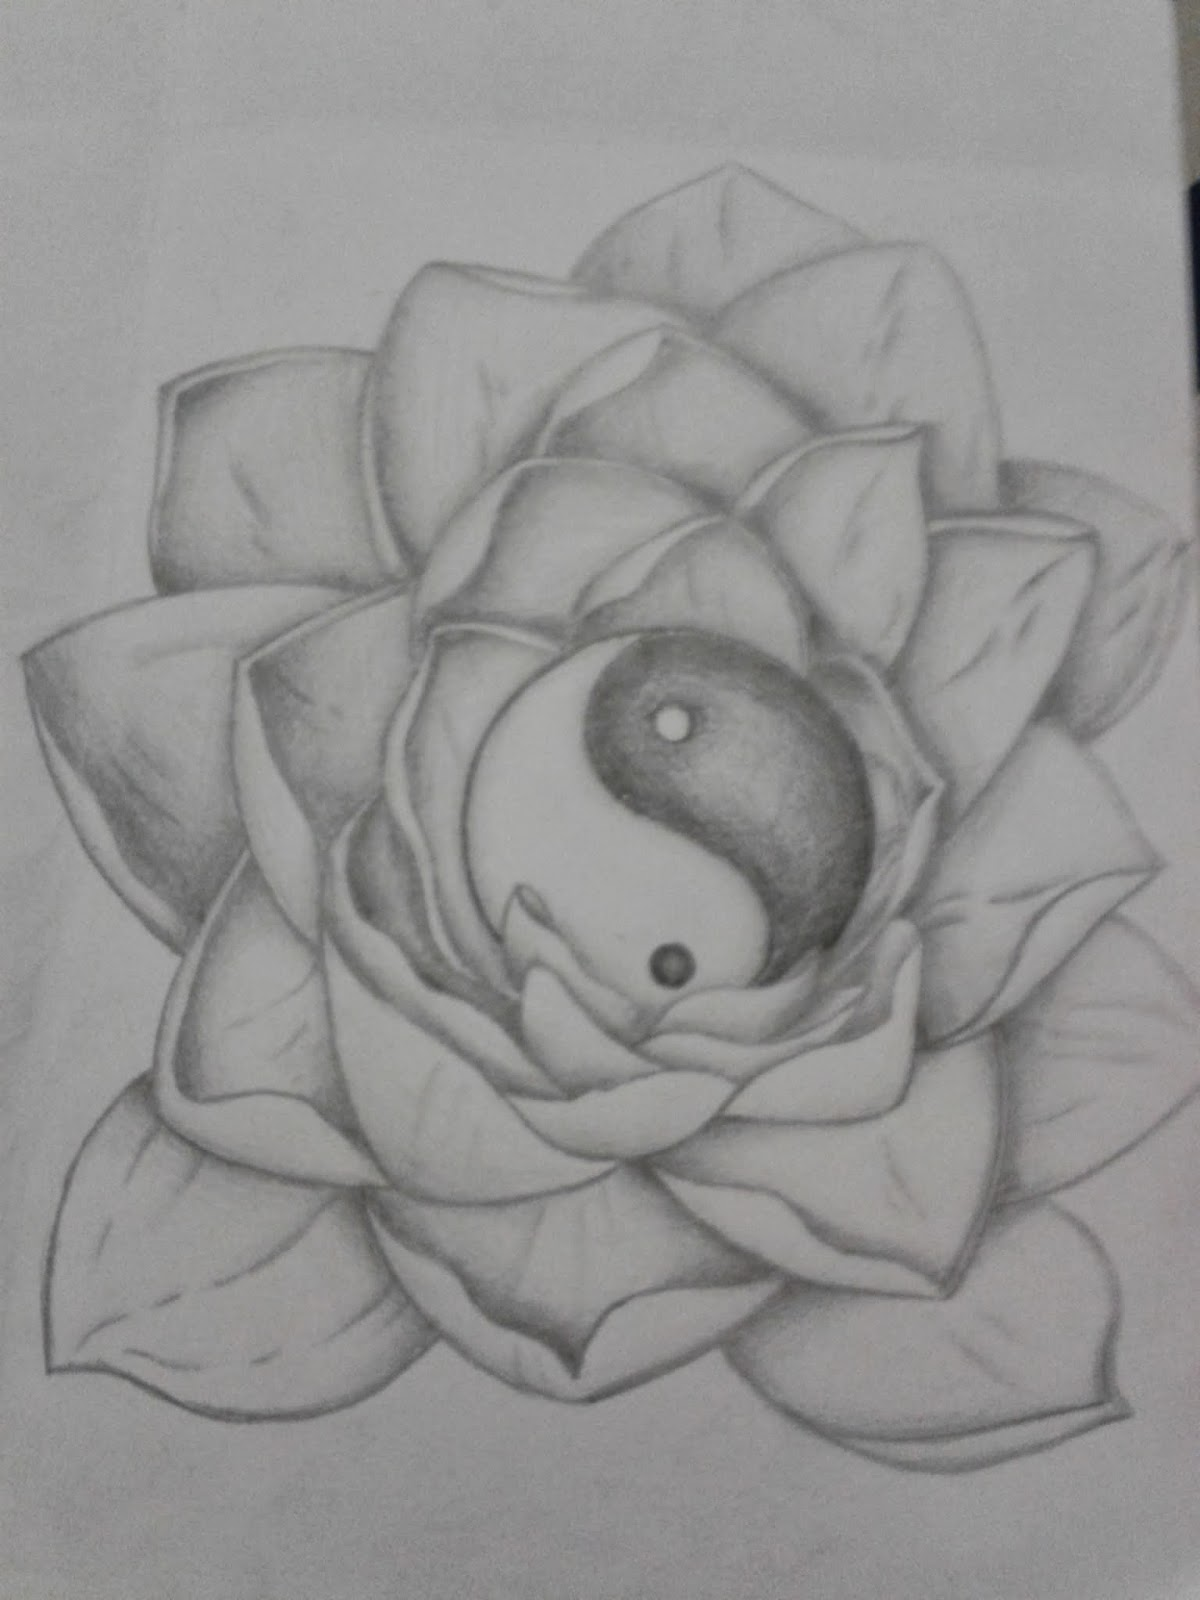 R3dwall art lotus floweryin yang tattoo design these are the tattoo designs i was talking about that i got paid for the customer wanted a lotus flower with a yin yang to represent the equality and izmirmasajfo